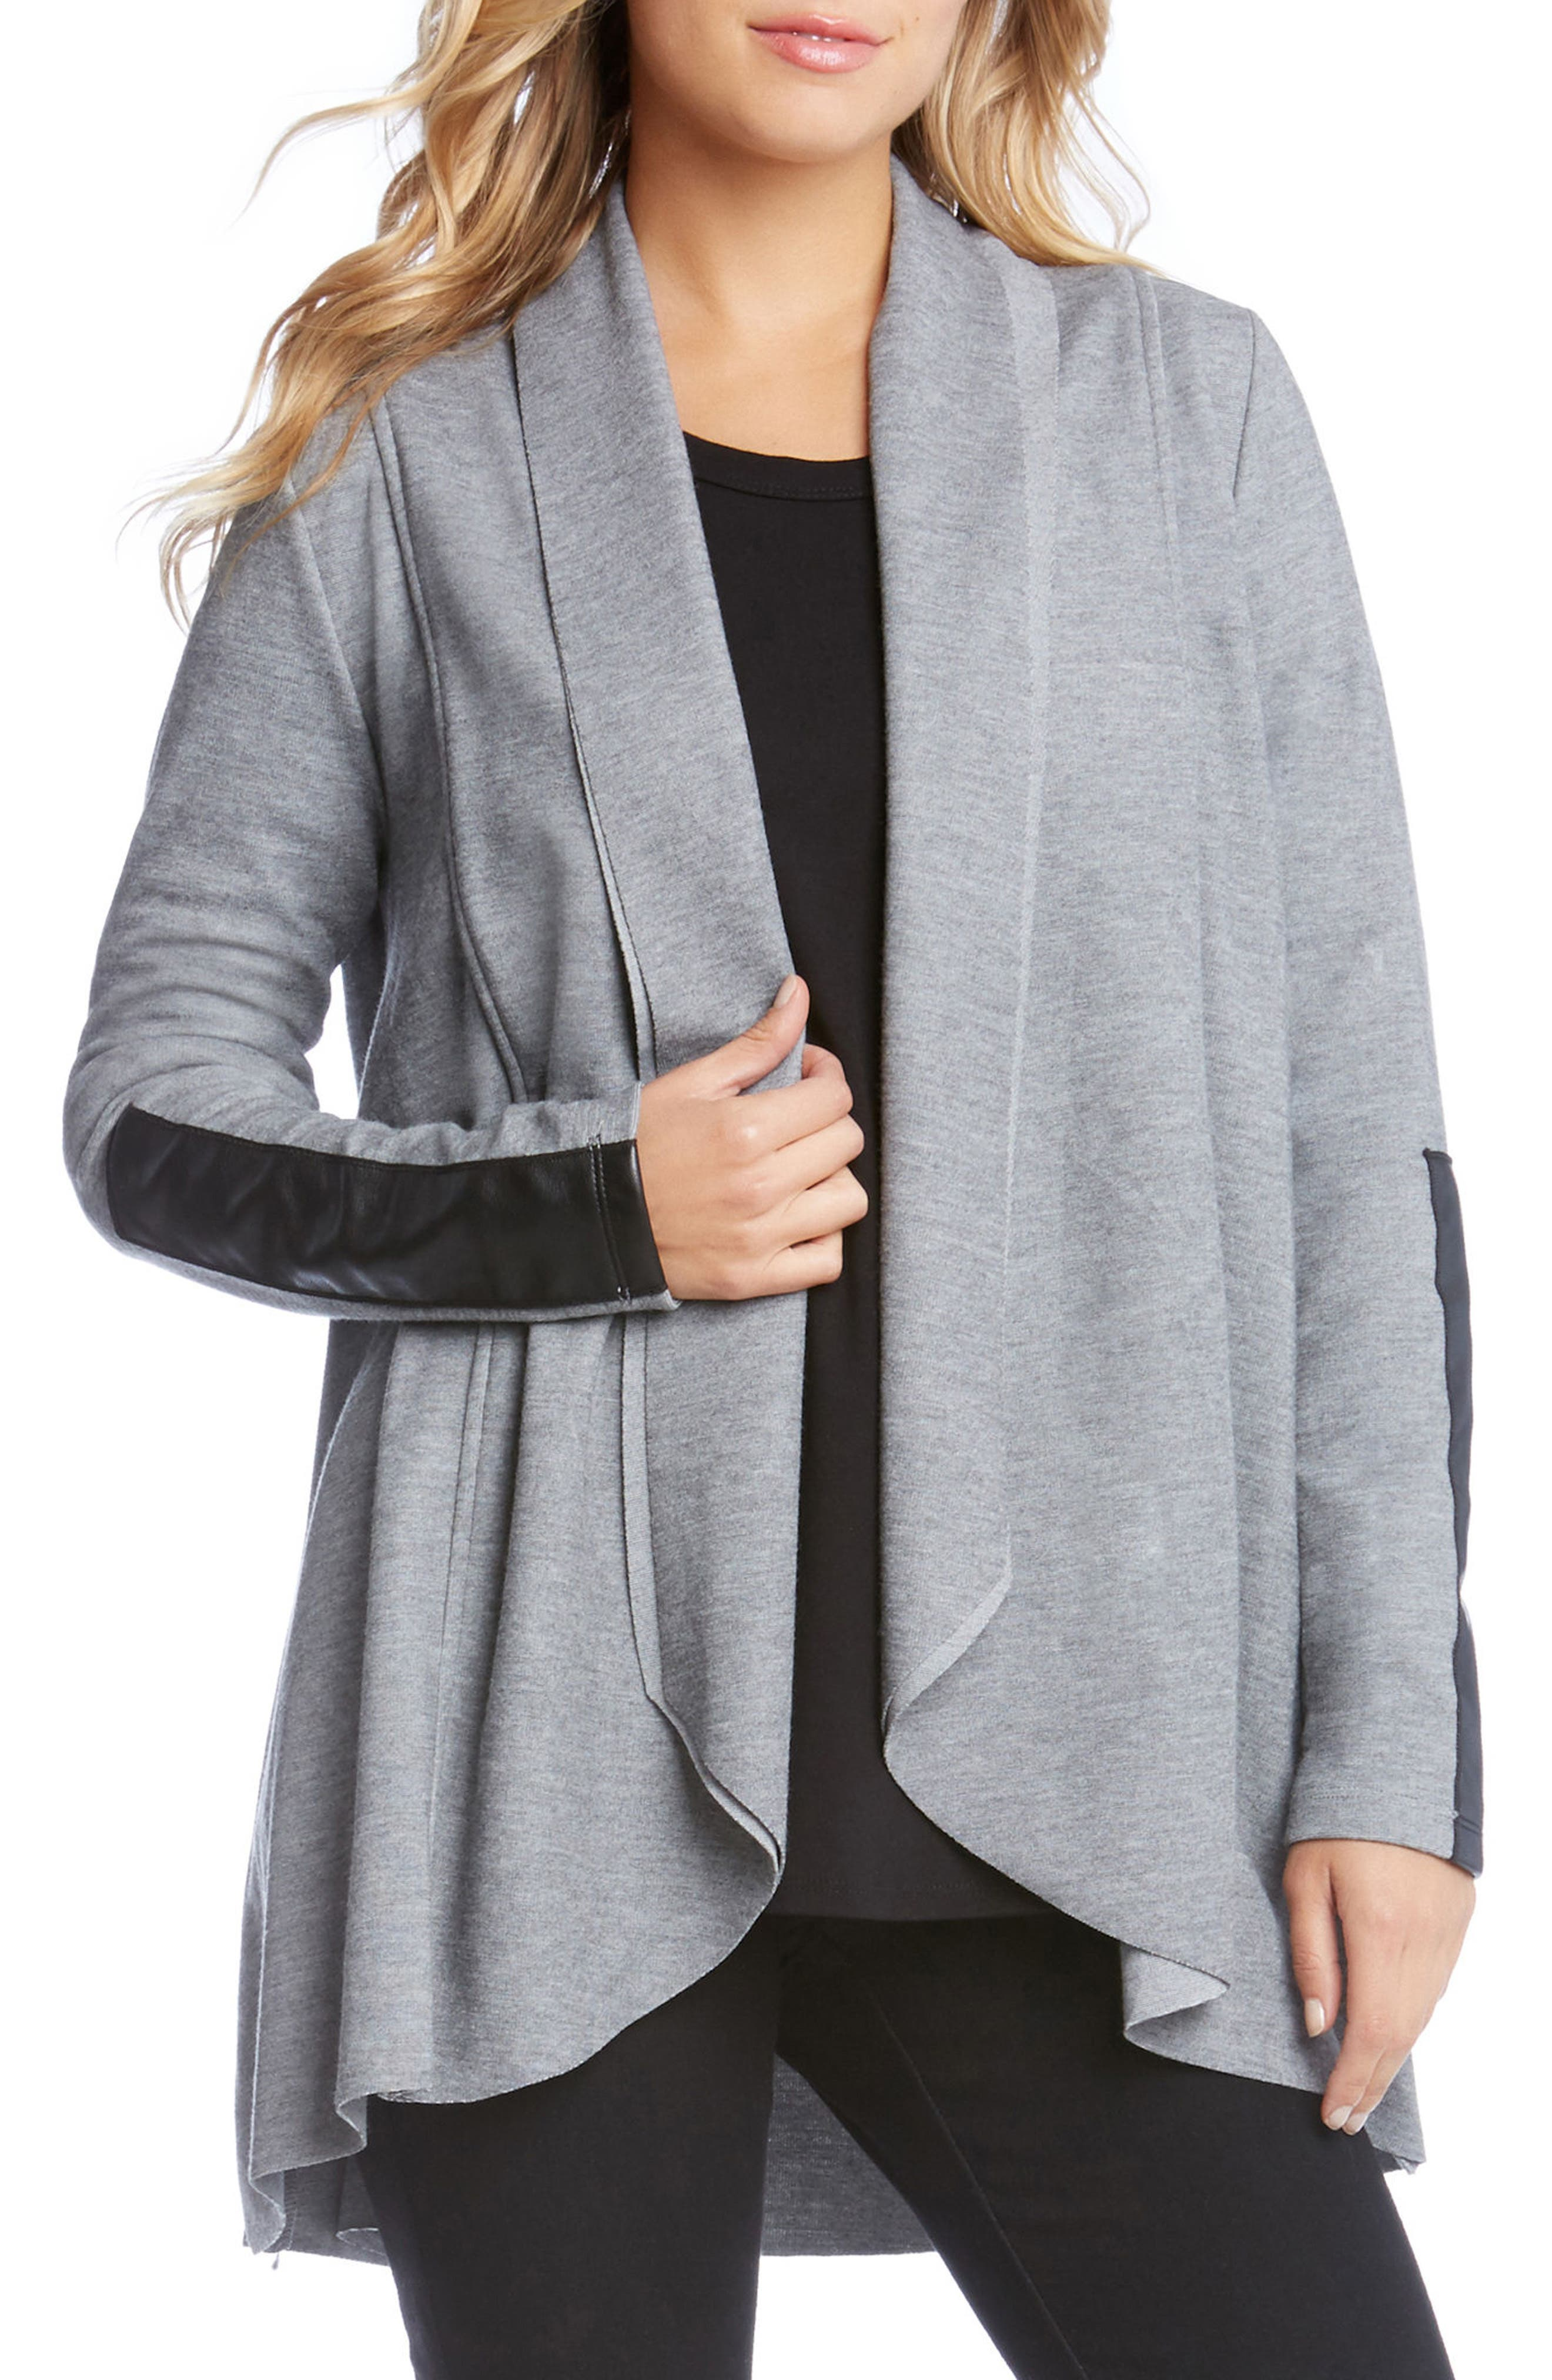 Alternate Image 1 Selected - Karen Kane Faux Leather Trim Drape Cardigan